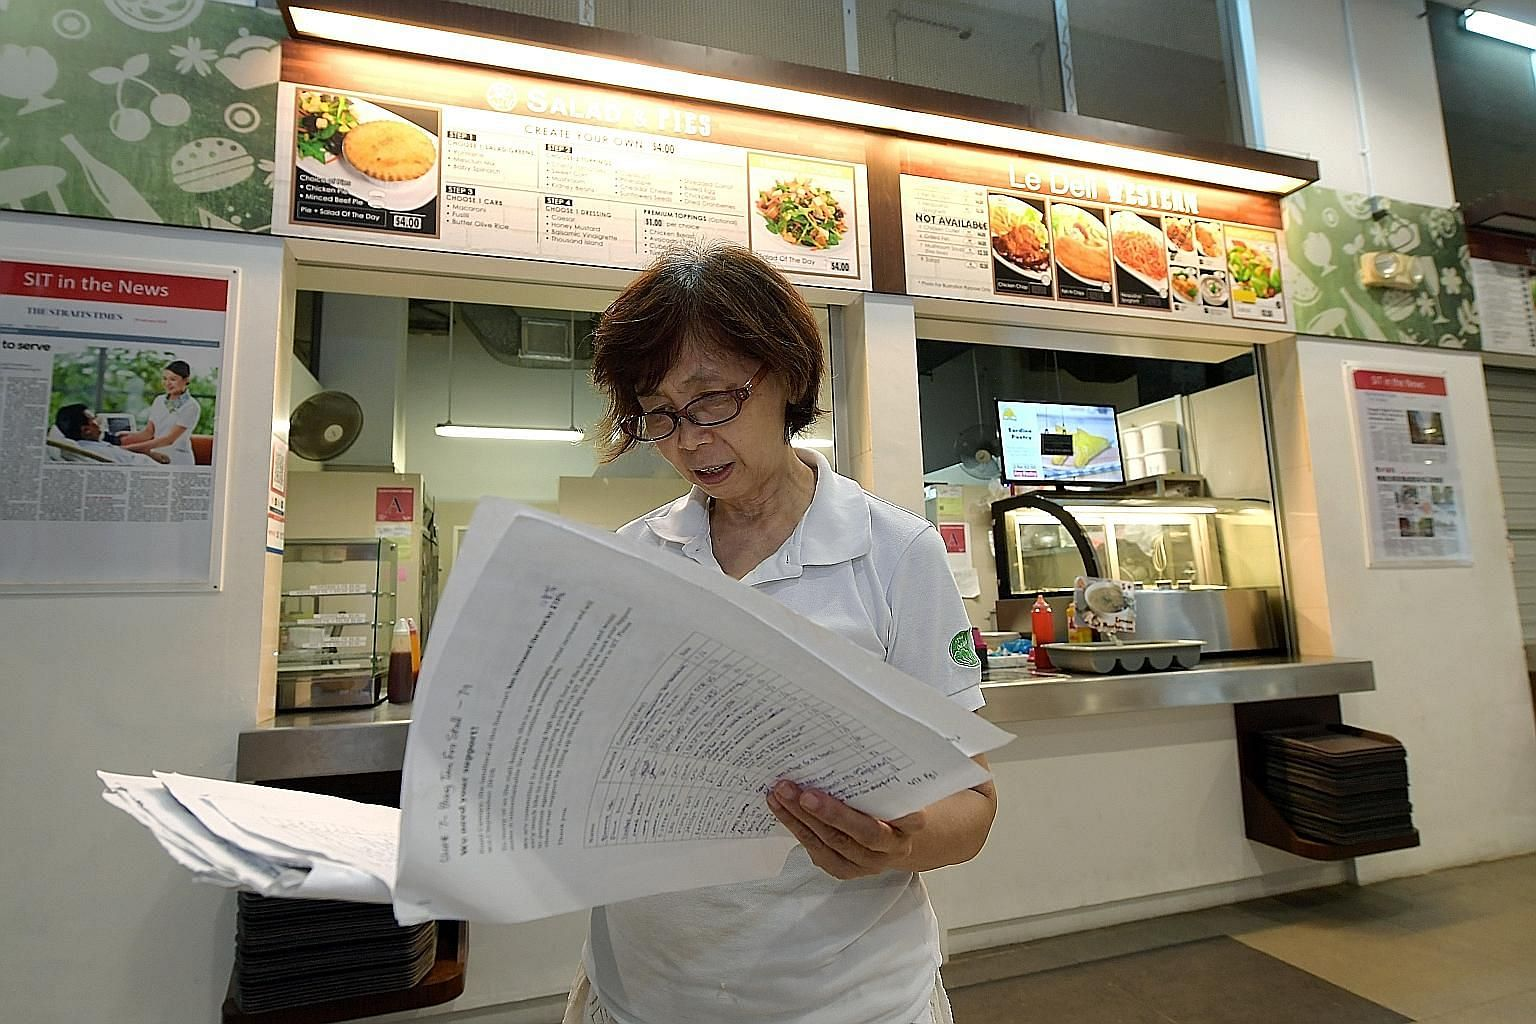 Madam Ong Swee Geok, who runs a salad stall, holding the petition signed by students, staff and other vendors protesting against the rising costs. She was told last month by Food Canopy, which leases out SIT's cafeteria stall spaces, that she would h